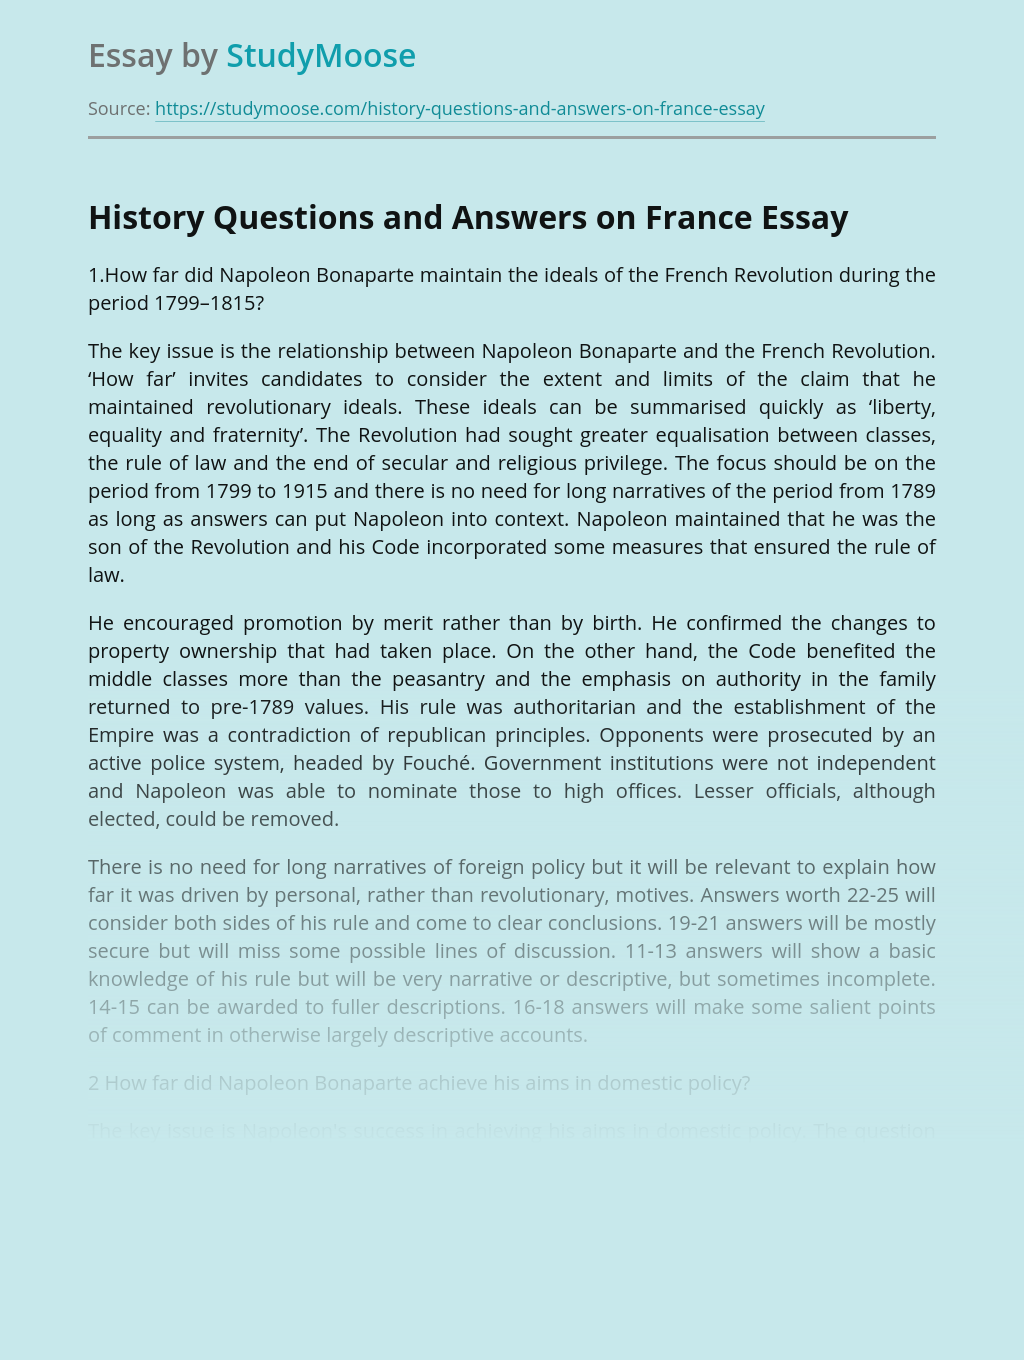 History Questions and Answers on France